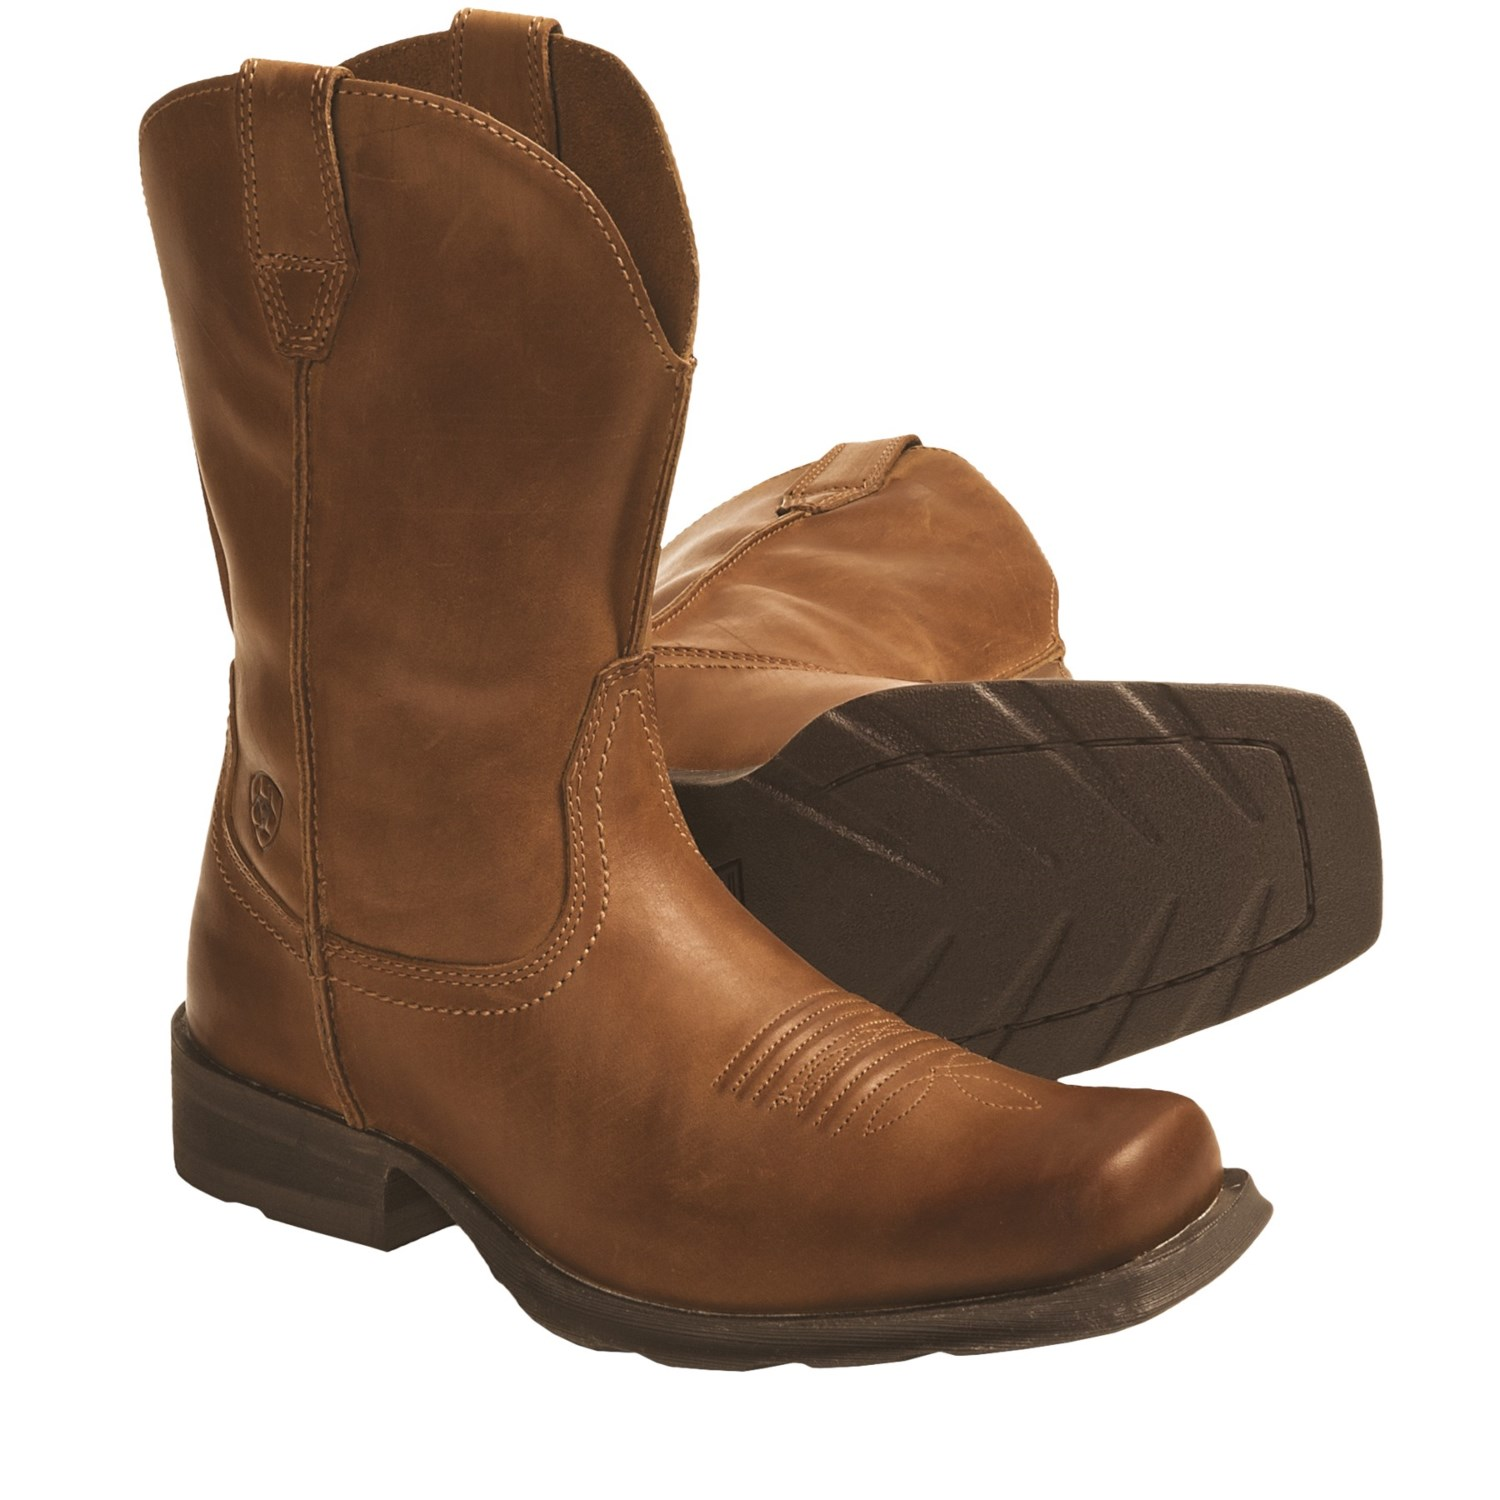 places to buy cowboy boots in columbia sc – Taconic Golf Club